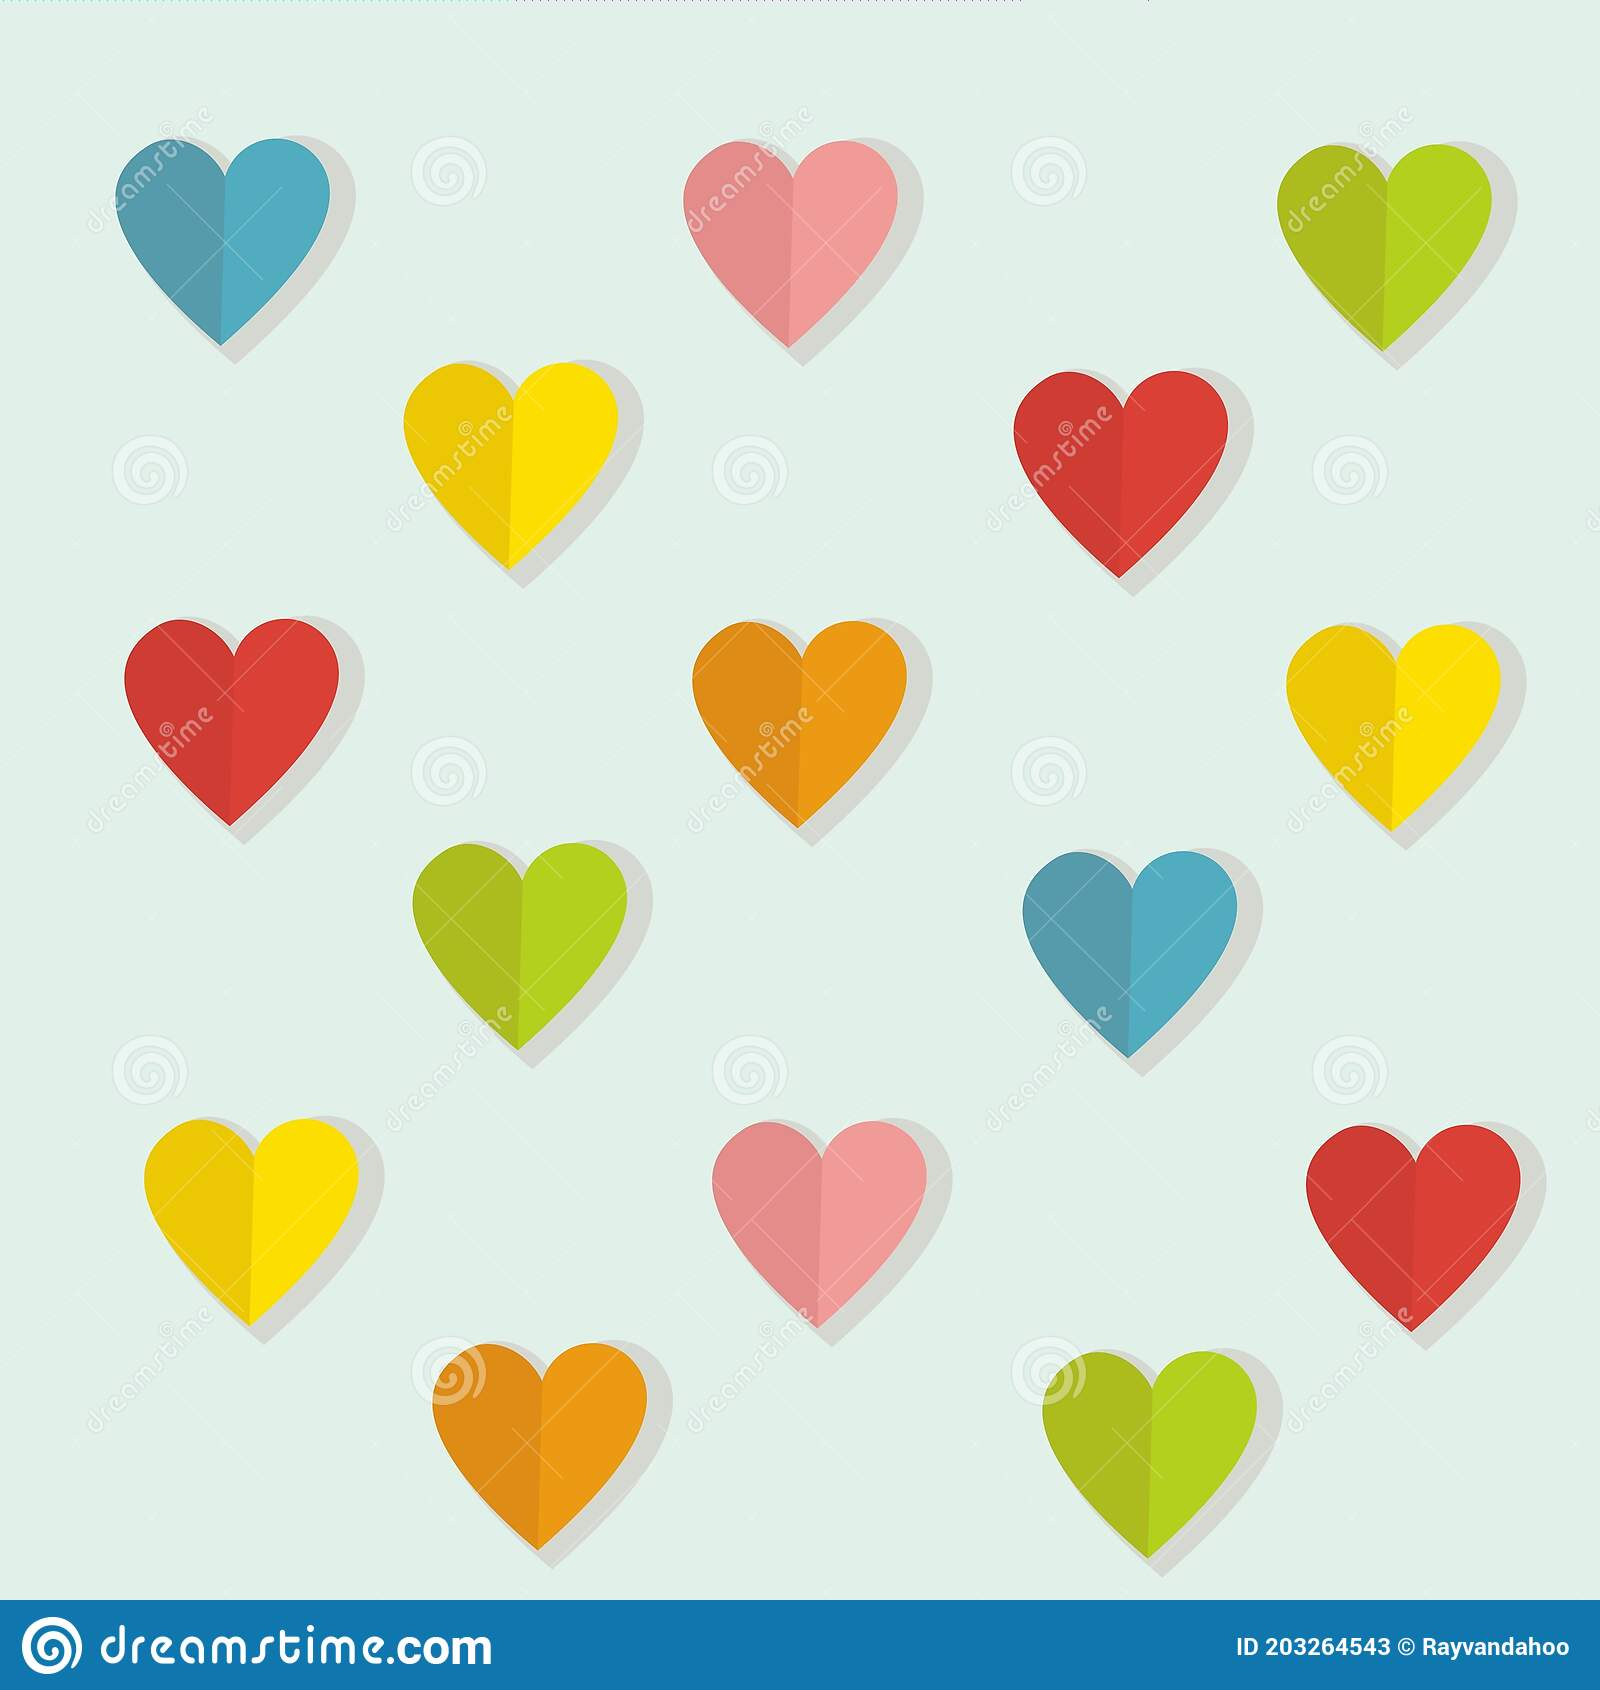 Design Of Love Paper In A Soft Colour Background For Any Template And Social Media Post Stock Vector Illustration Of Ball Animation 203264543